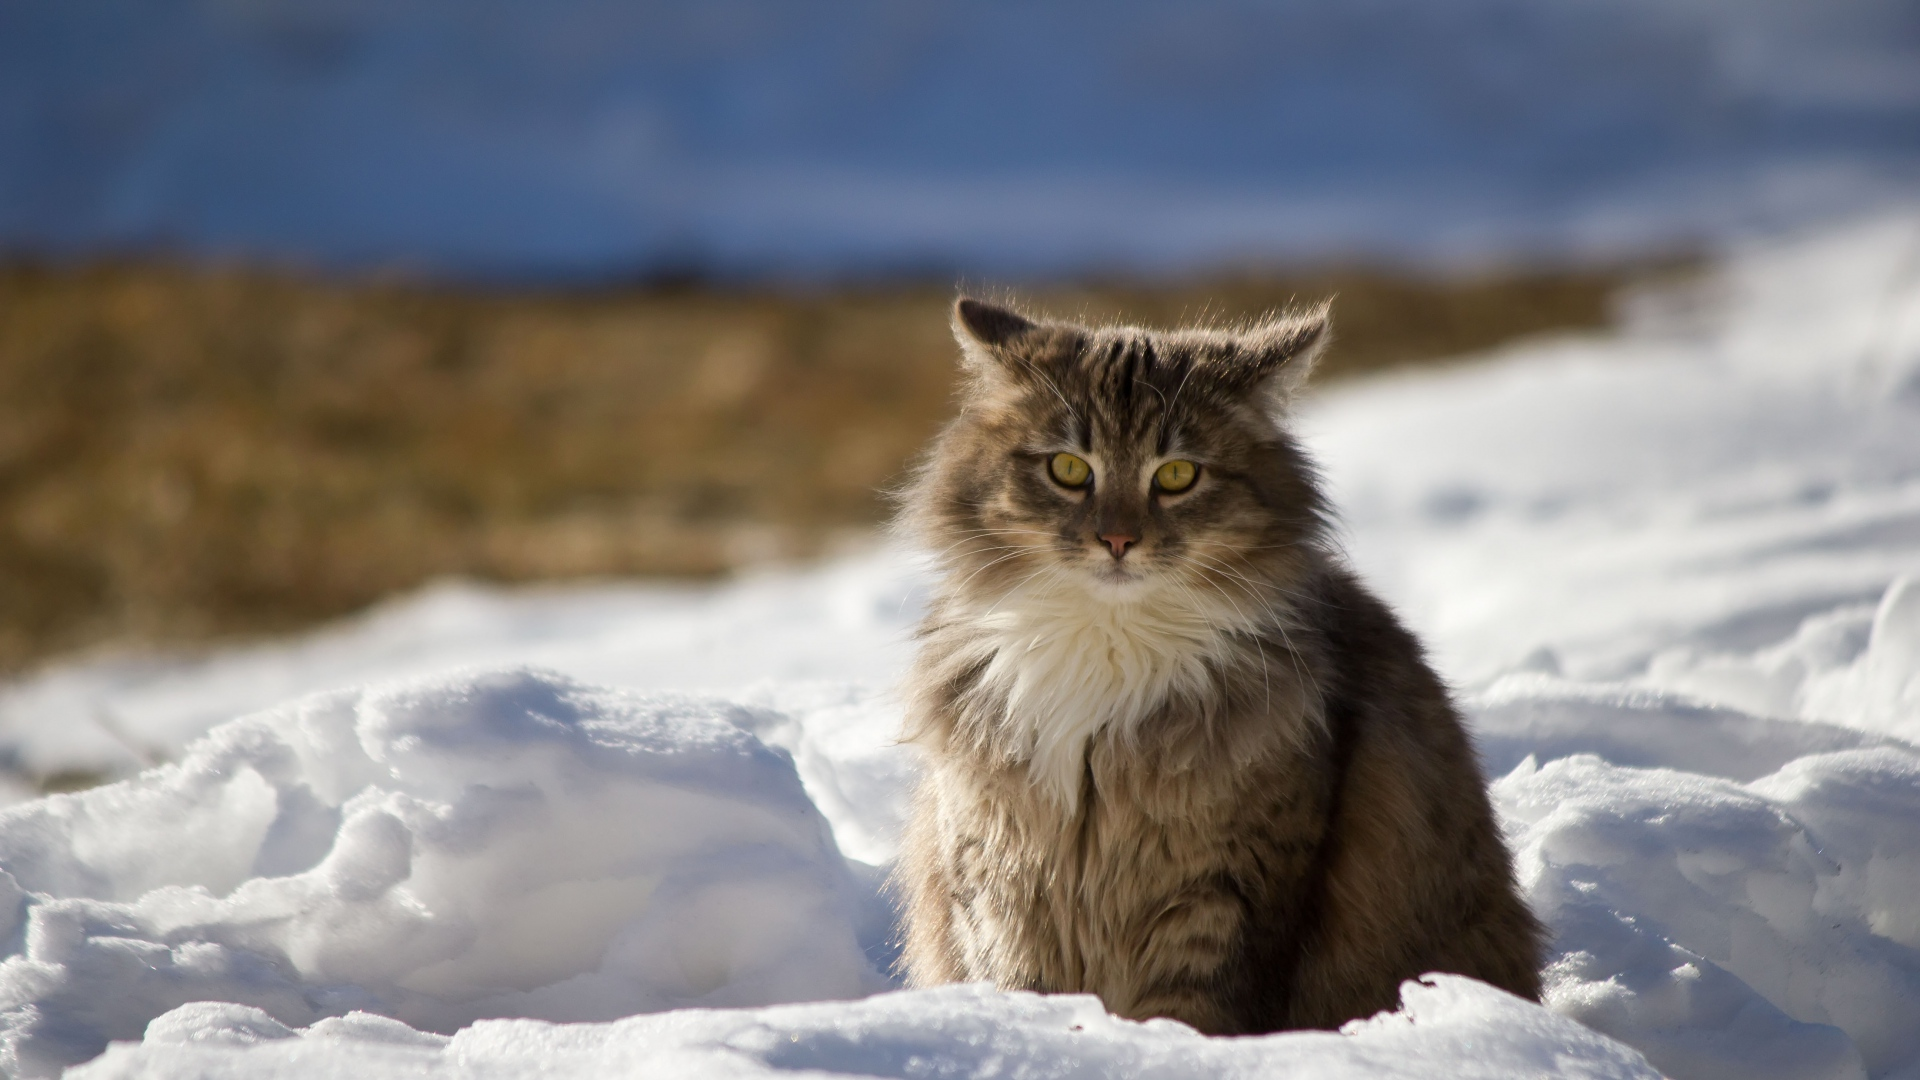 cat in snow wallpaper 62687